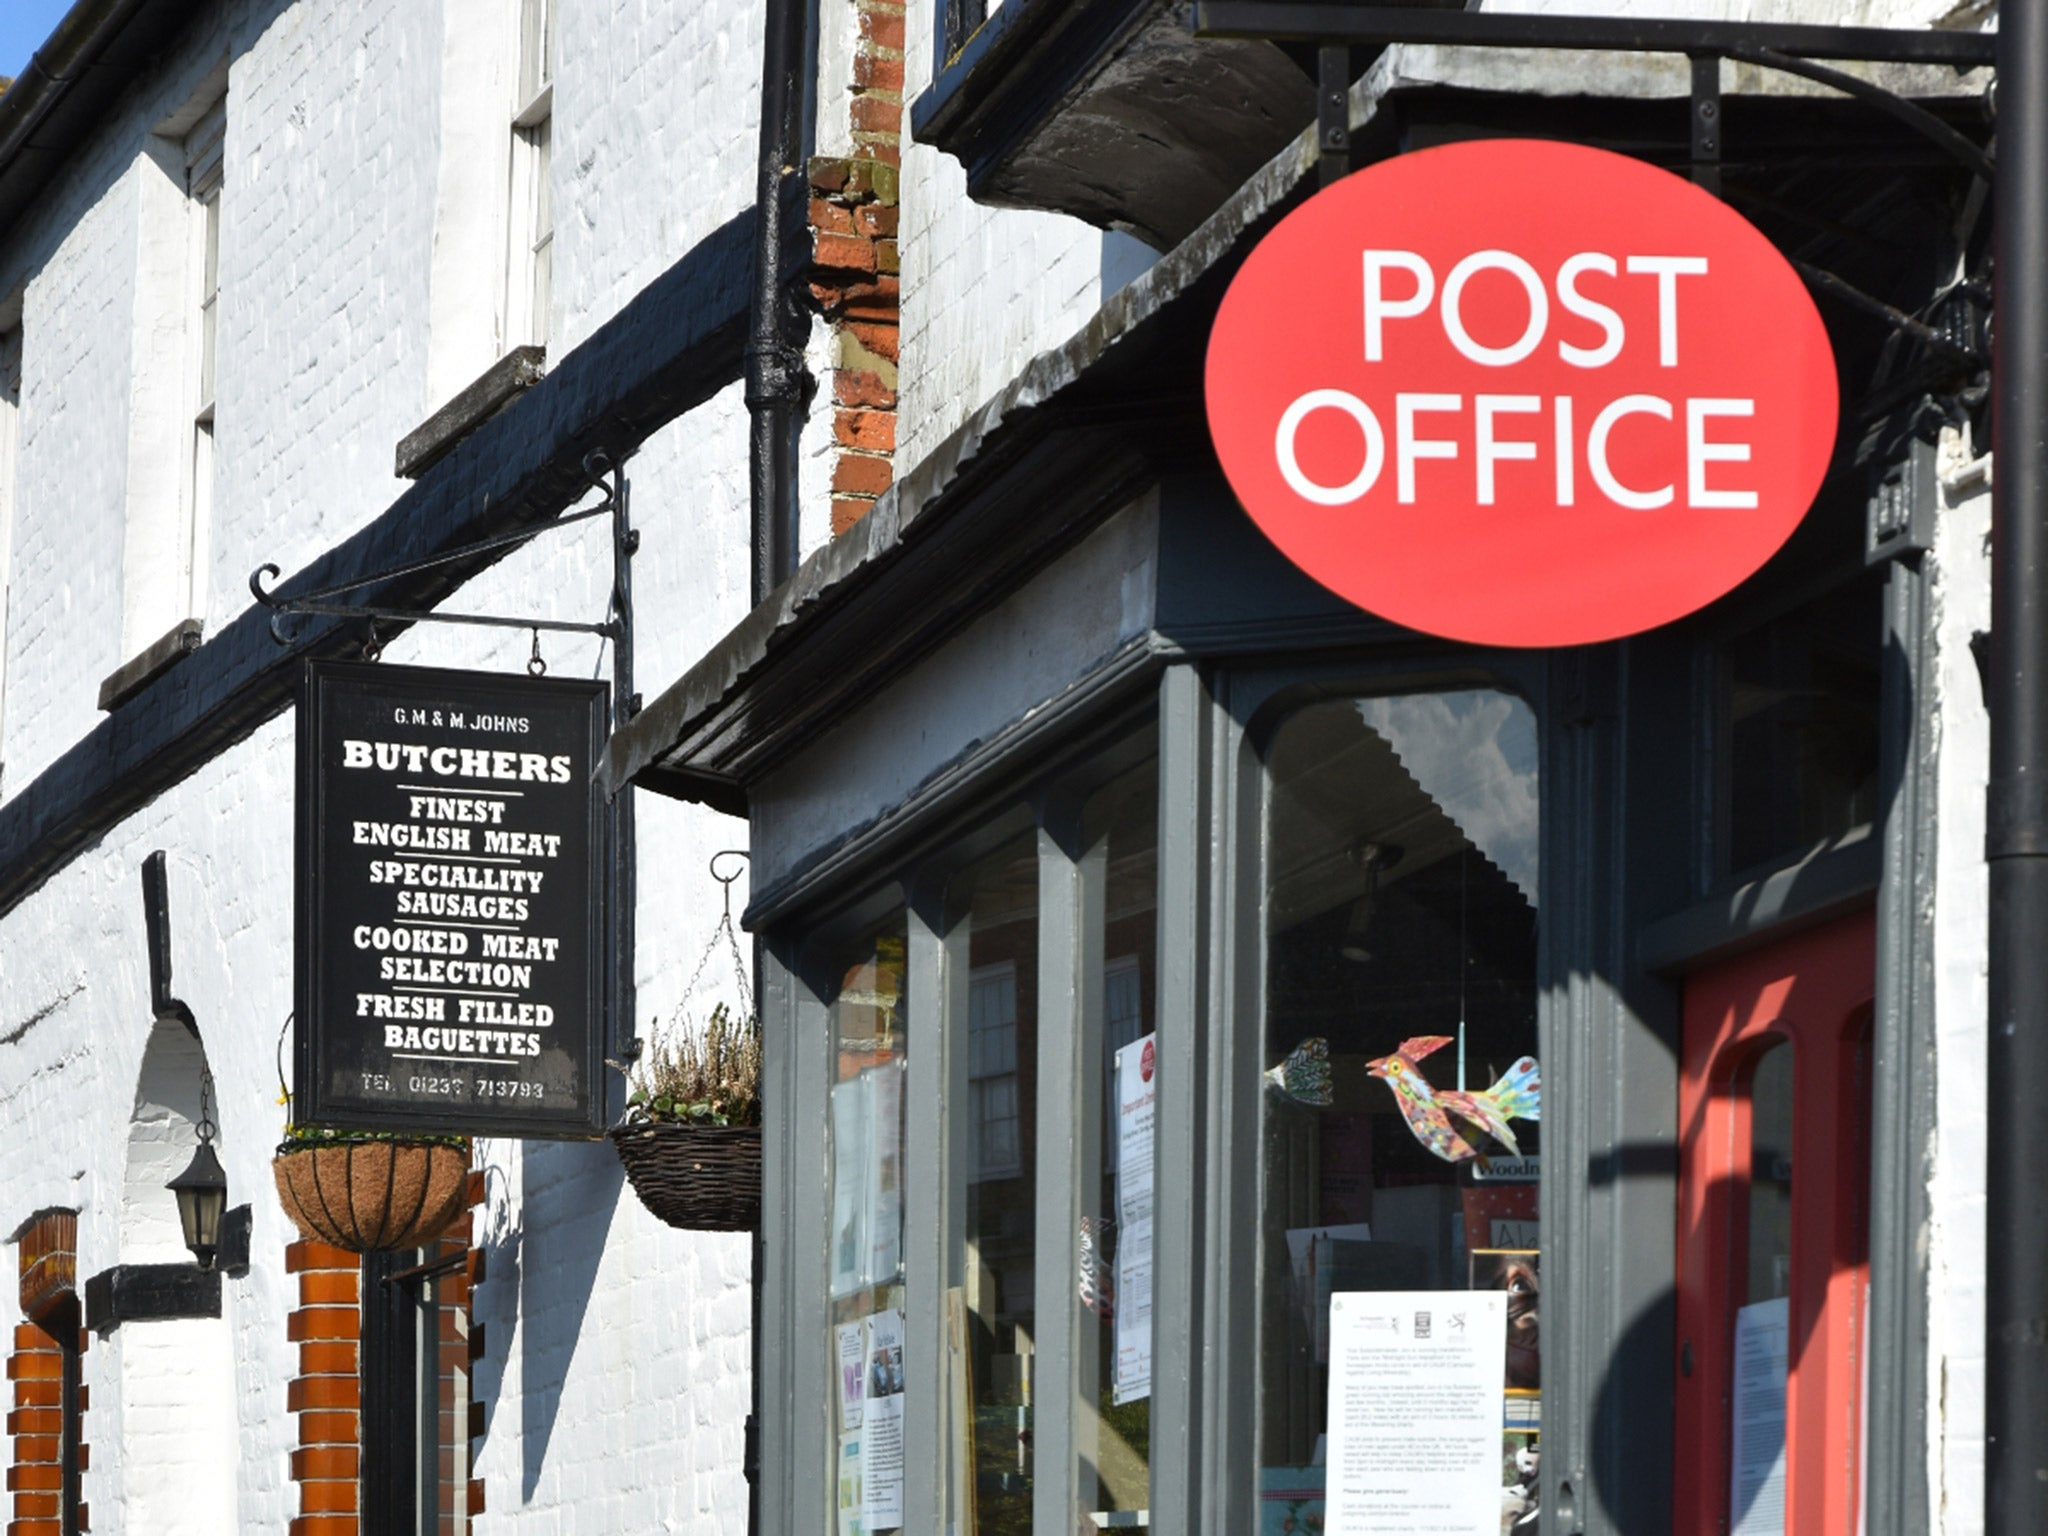 village left without post office after owners claim they were